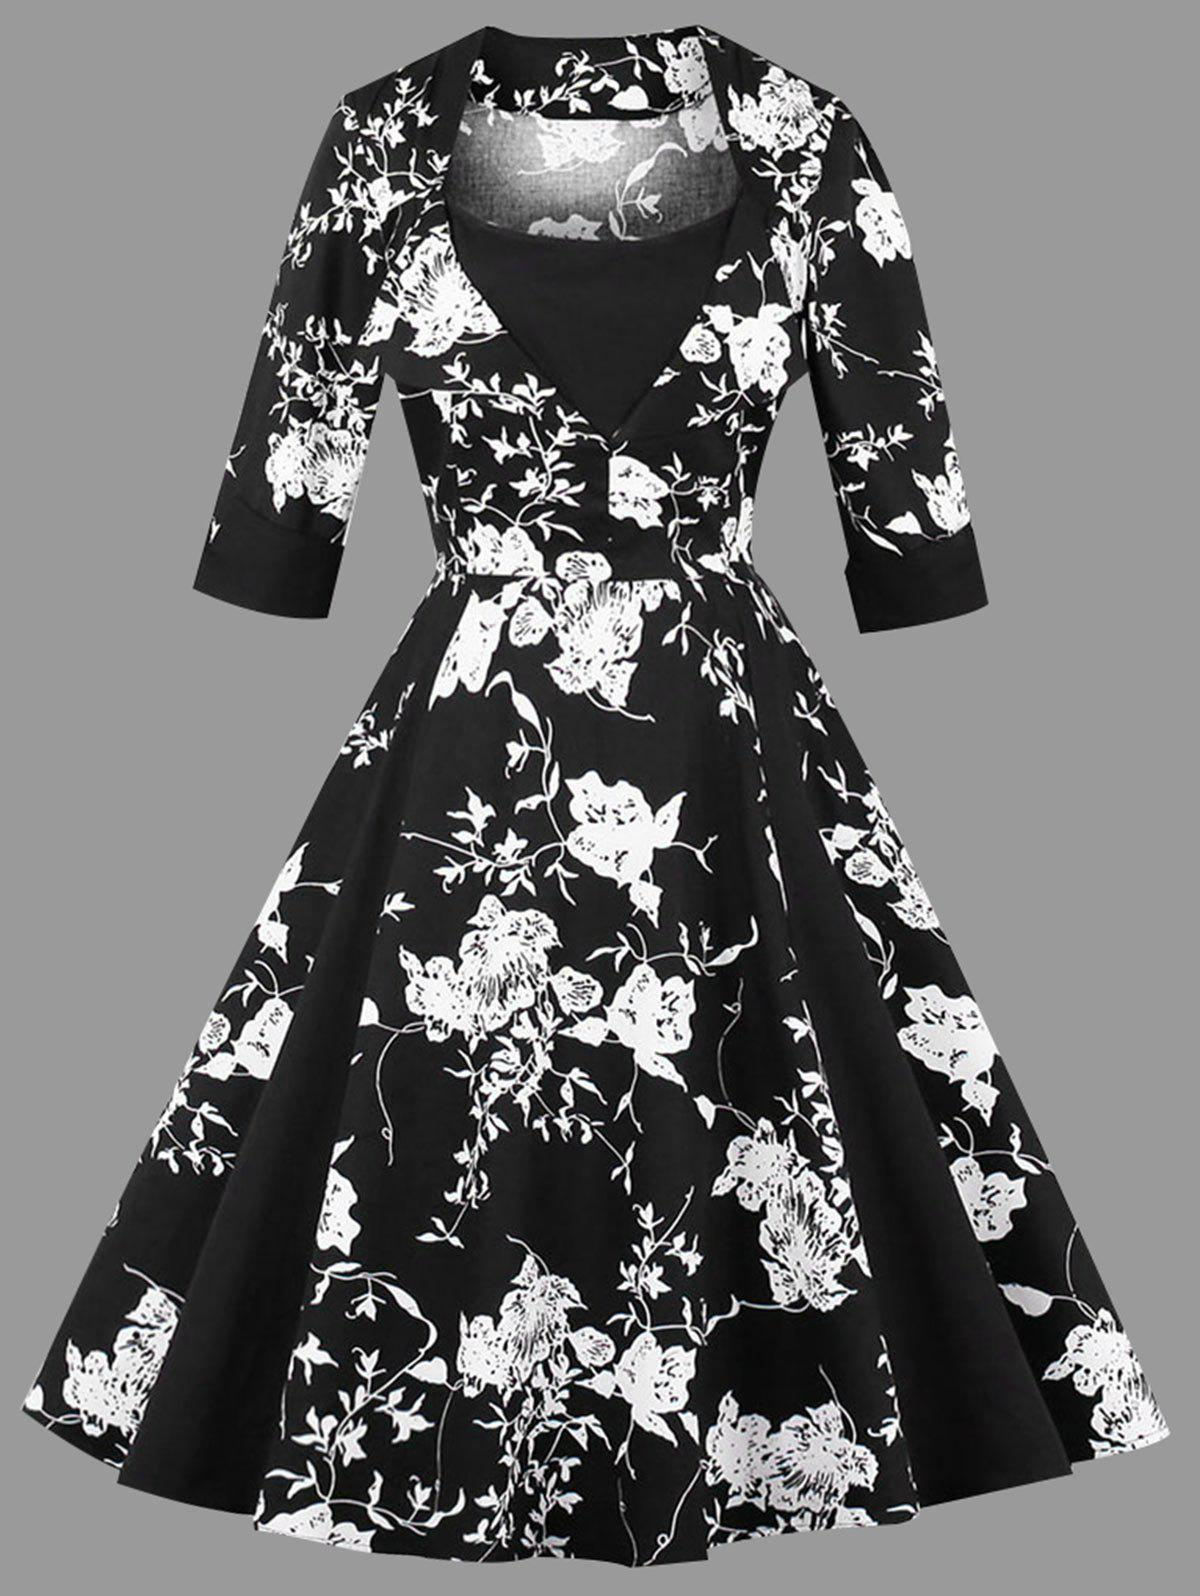 Plus Size Floral Print Vintage DressWOMEN<br><br>Size: 3XL; Color: BLACK; Style: Vintage; Material: Cotton,Polyester; Silhouette: A-Line; Dresses Length: Knee-Length; Neckline: Square Collar; Sleeve Length: 3/4 Length Sleeves; Pattern Type: Floral; With Belt: No; Season: Fall,Spring; Weight: 0.4400kg; Package Contents: 1 x Dress;